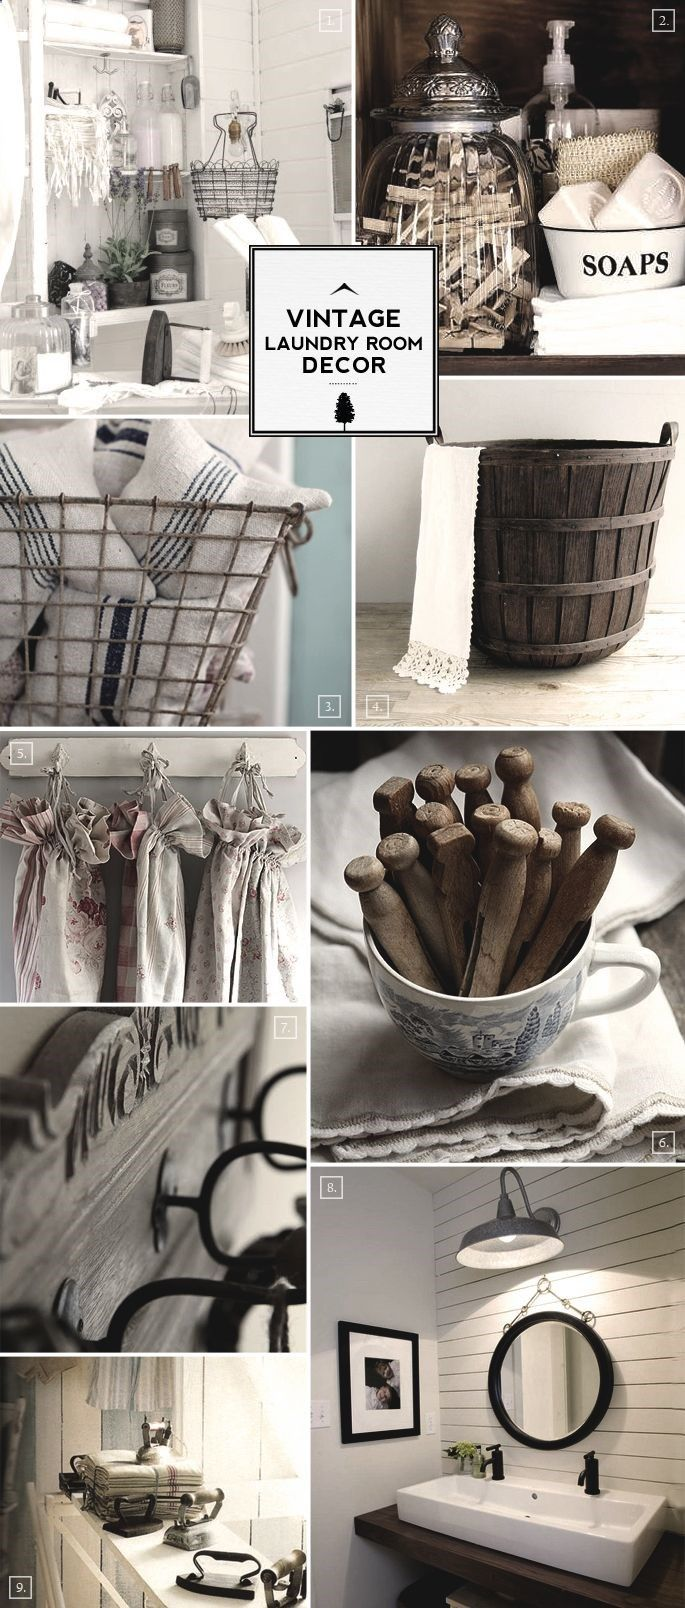 A Guide To Using Pinterest For Home Decor Ideas: Style Guide: Vintage Laundry Room Decor Ideas........love